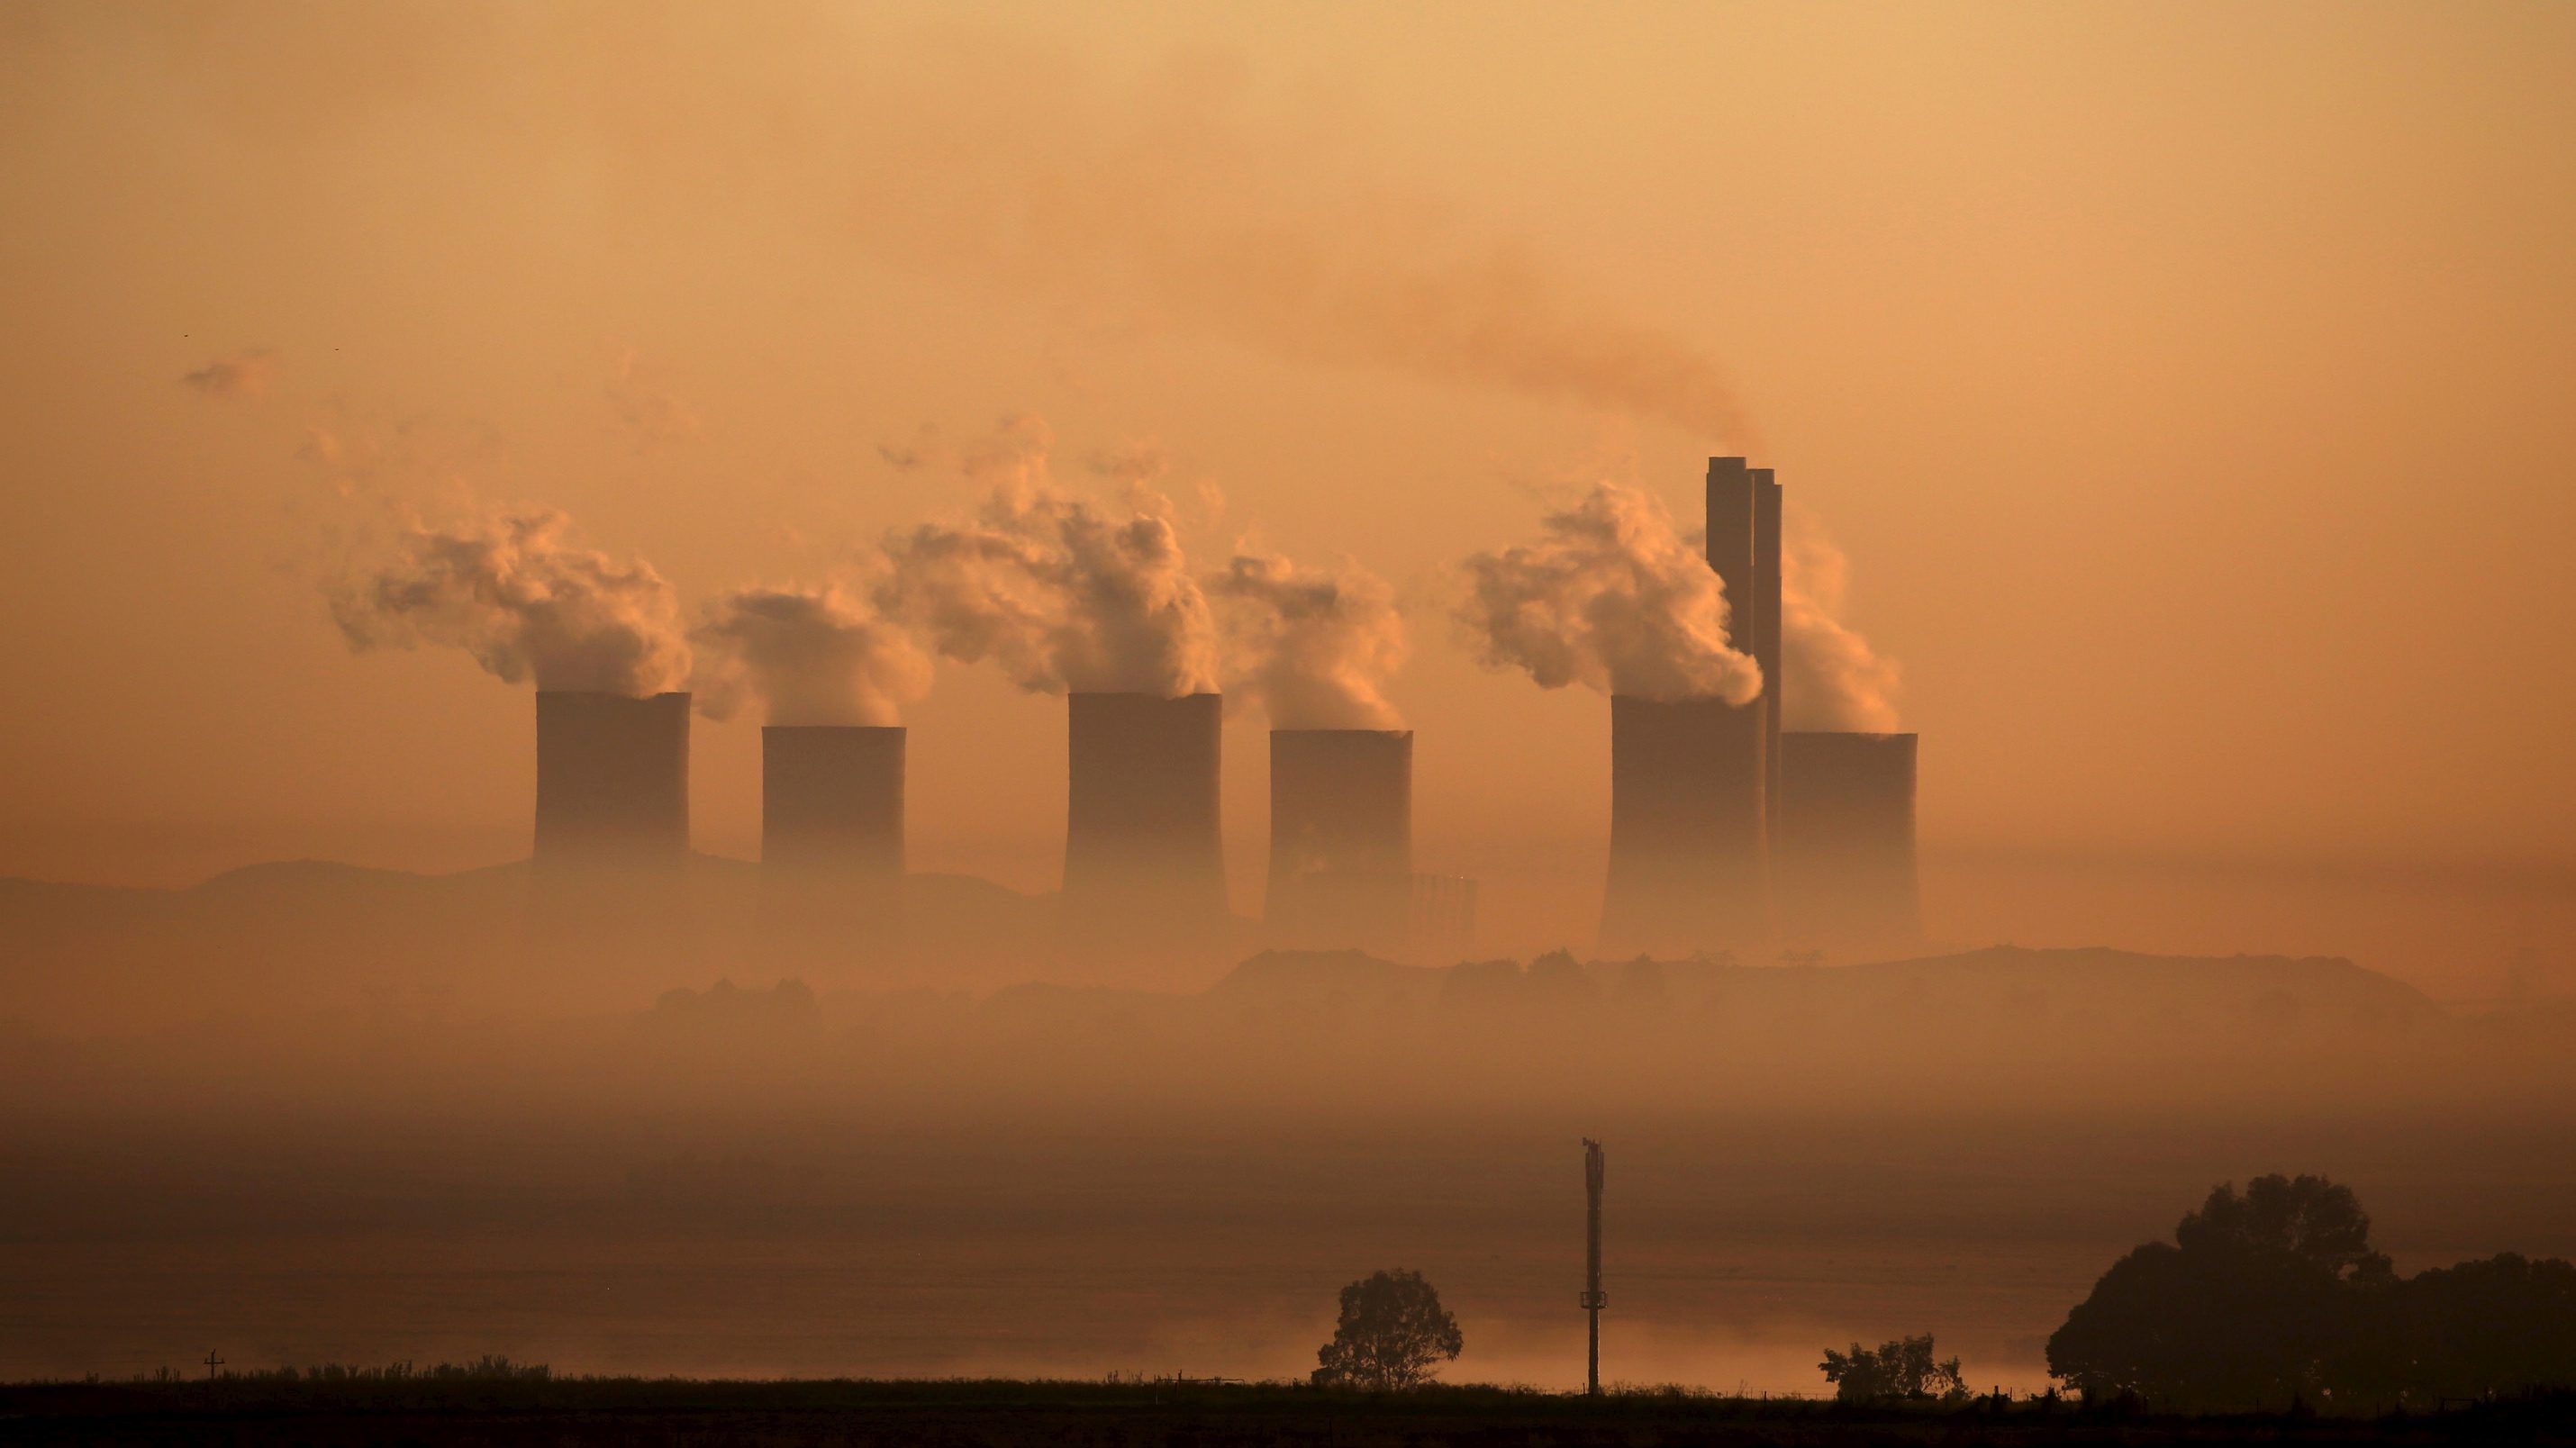 Steam rises at sunrise from the  Lethabo Power Station, a coal-fired power station owned by state power utility ESKOM near Sasolburg, South Africa, March 2, 2016. Picture taken March 2, 2016. /File Photo - S1BEUGDXLCAB